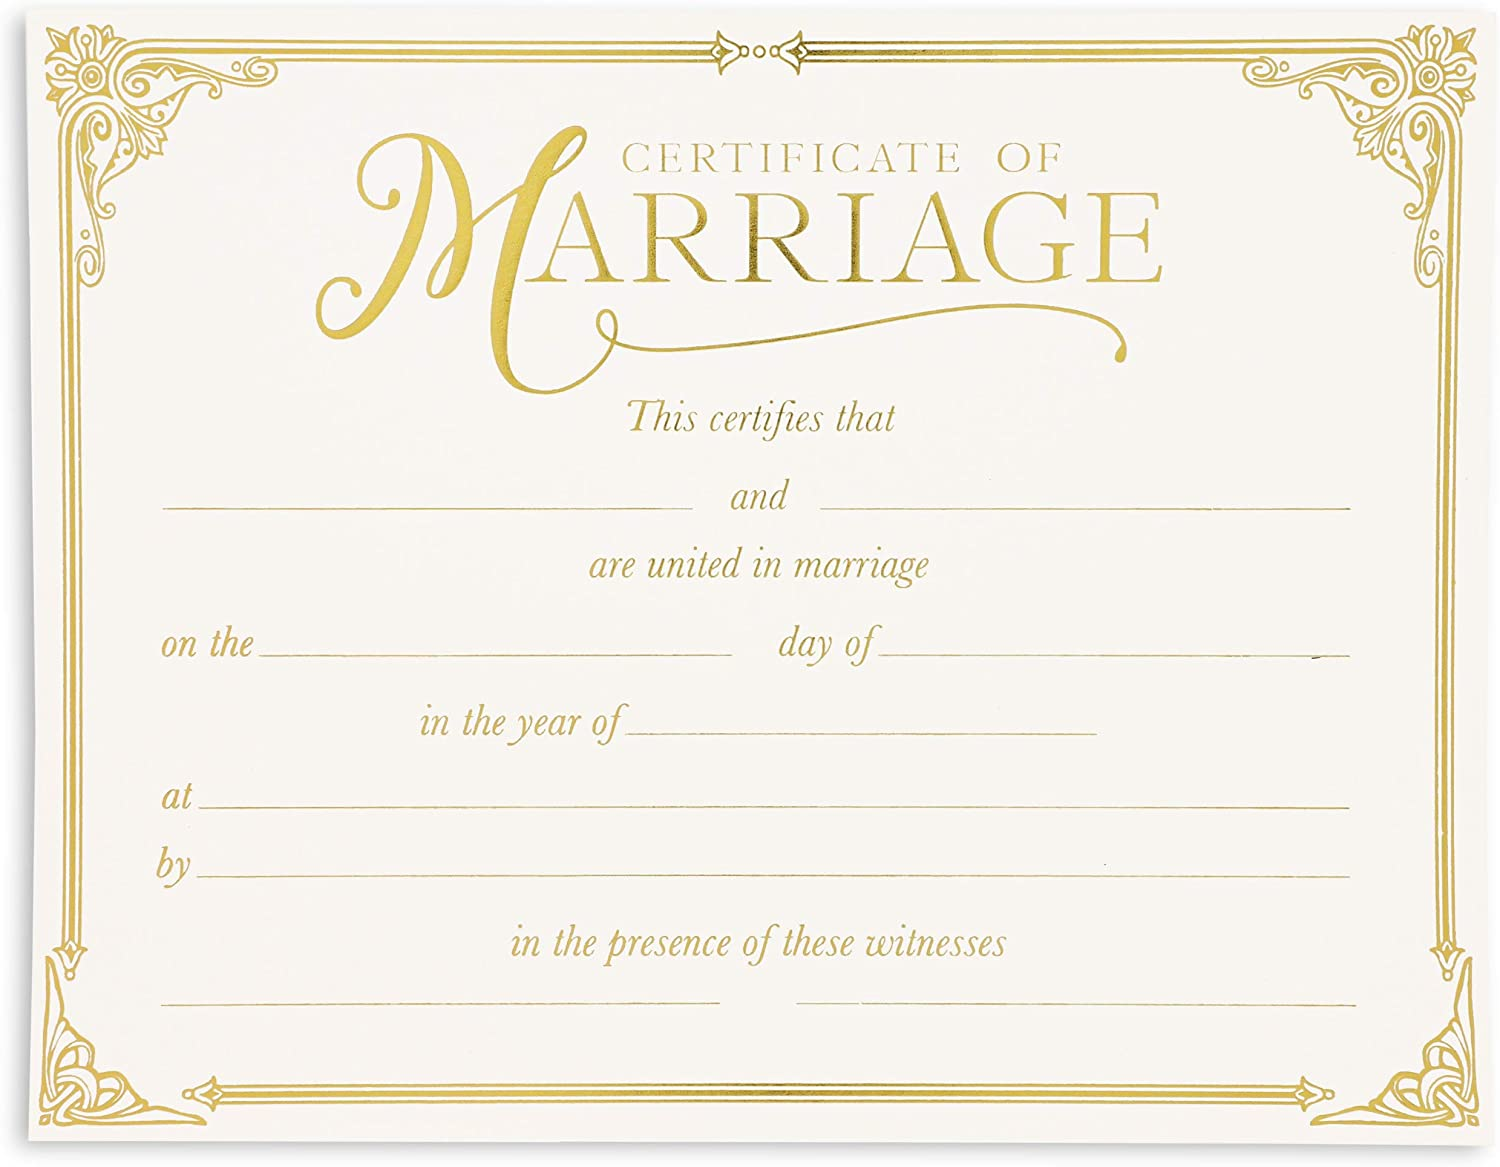 Marriage Certificates with Gold Foil Edges (11 x 8.5 in, 48 Pack)